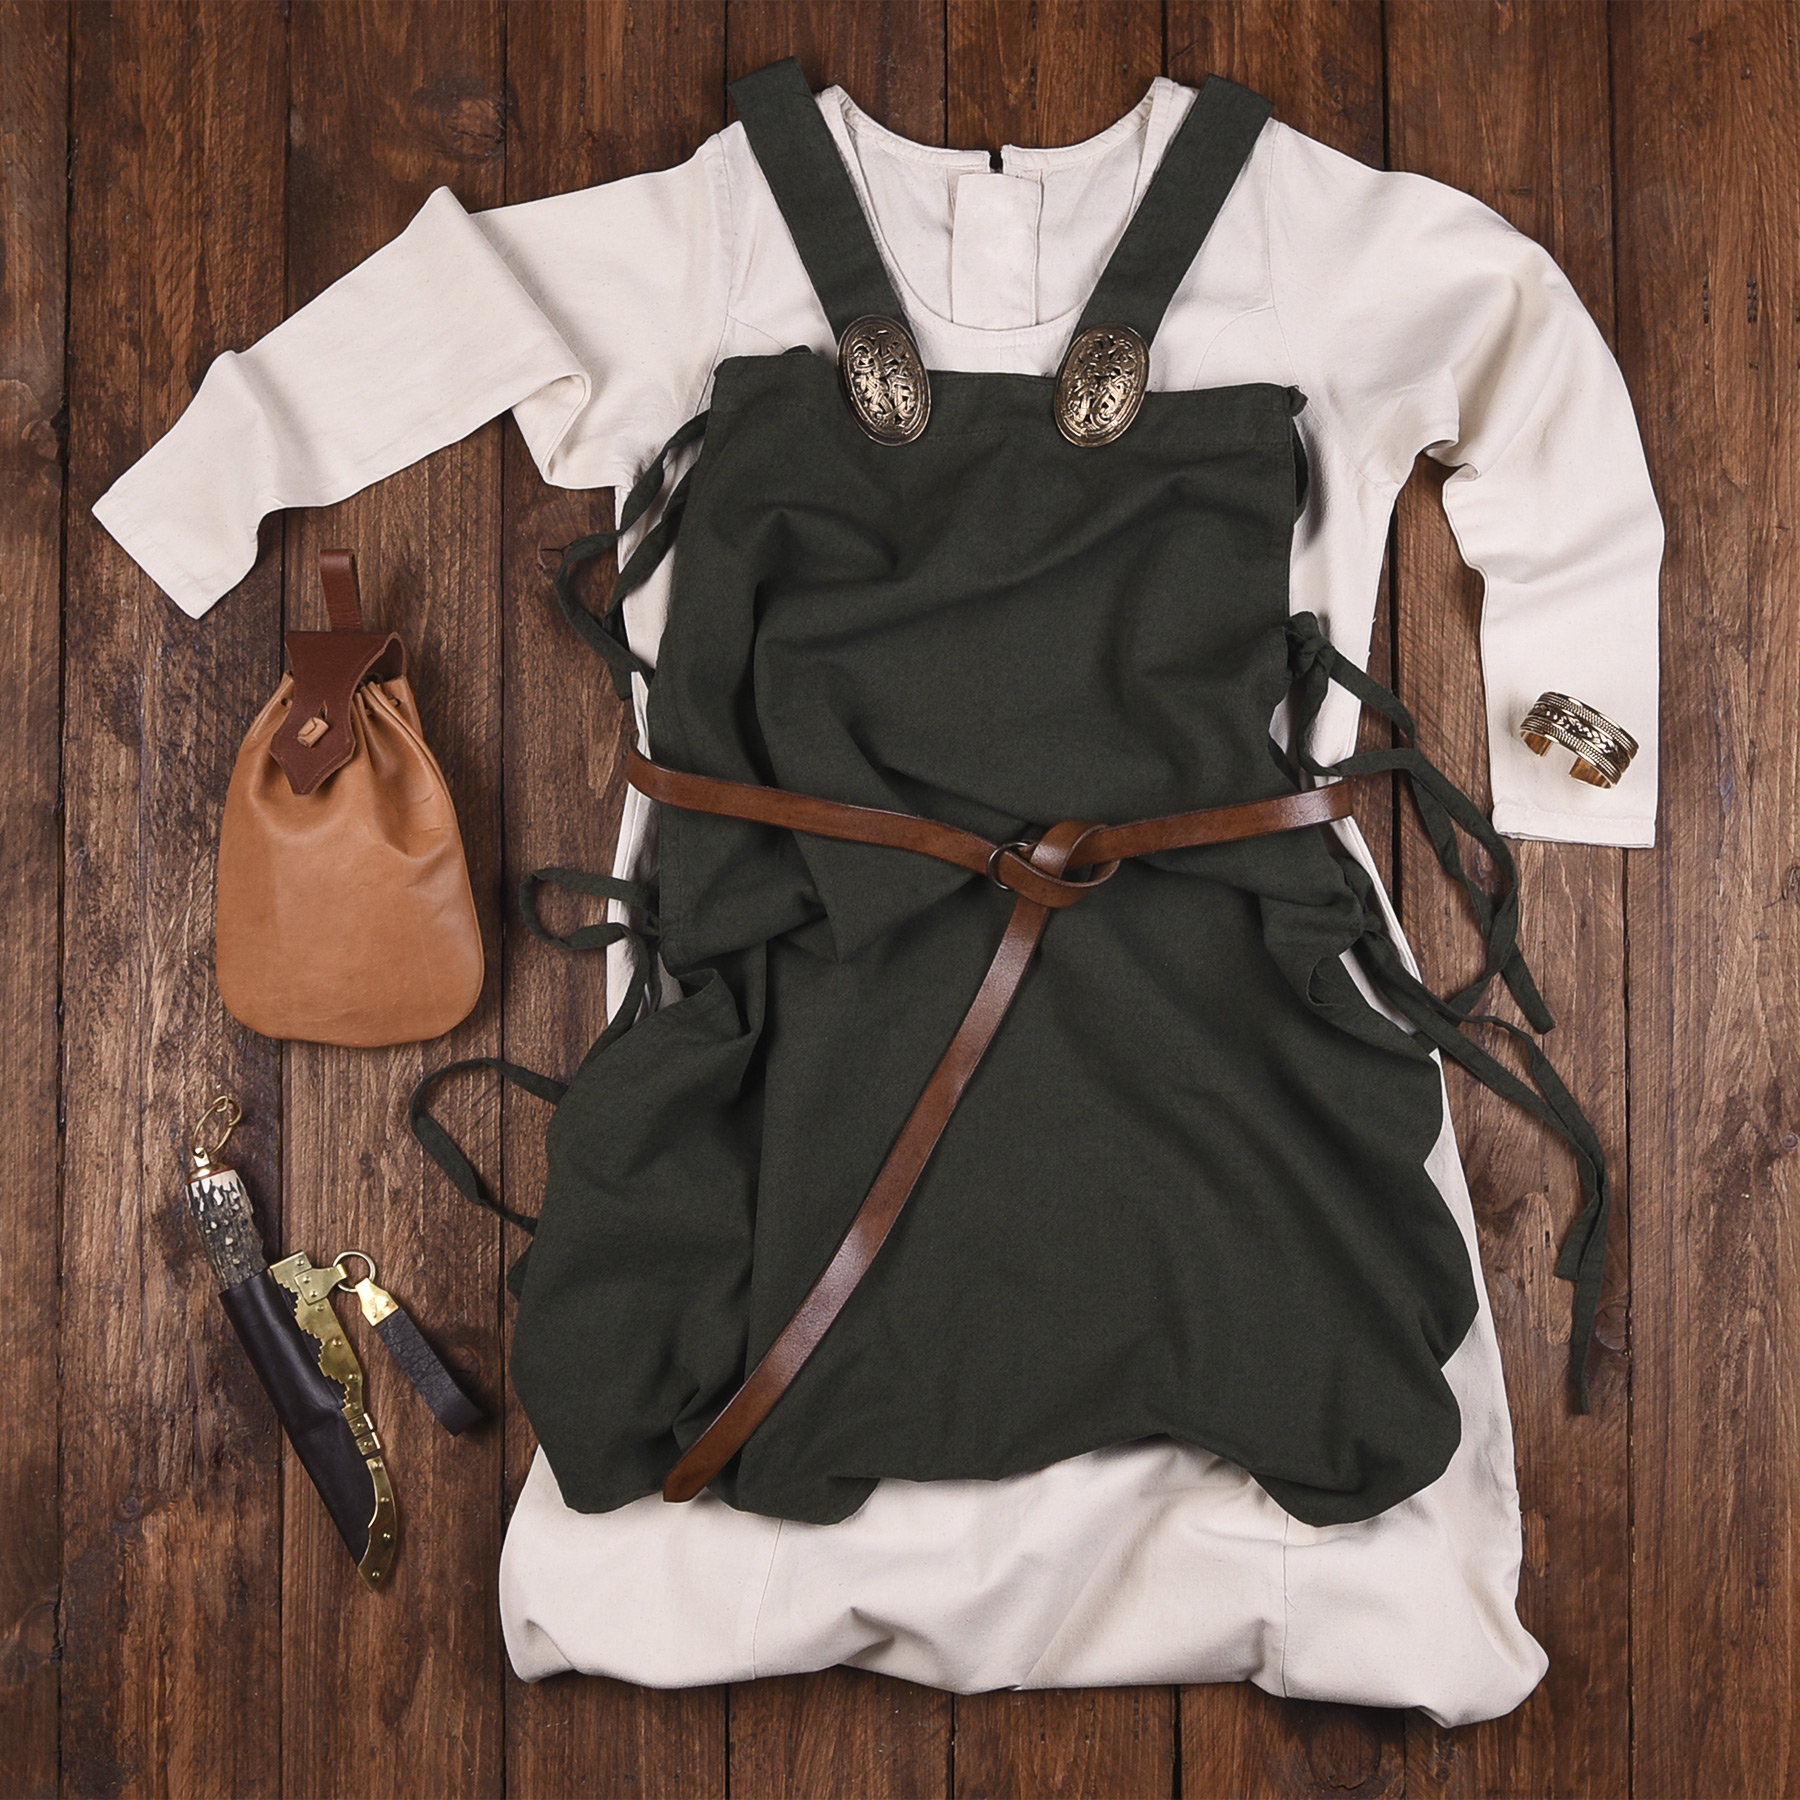 Viking Garments for Women - Battle Merchant